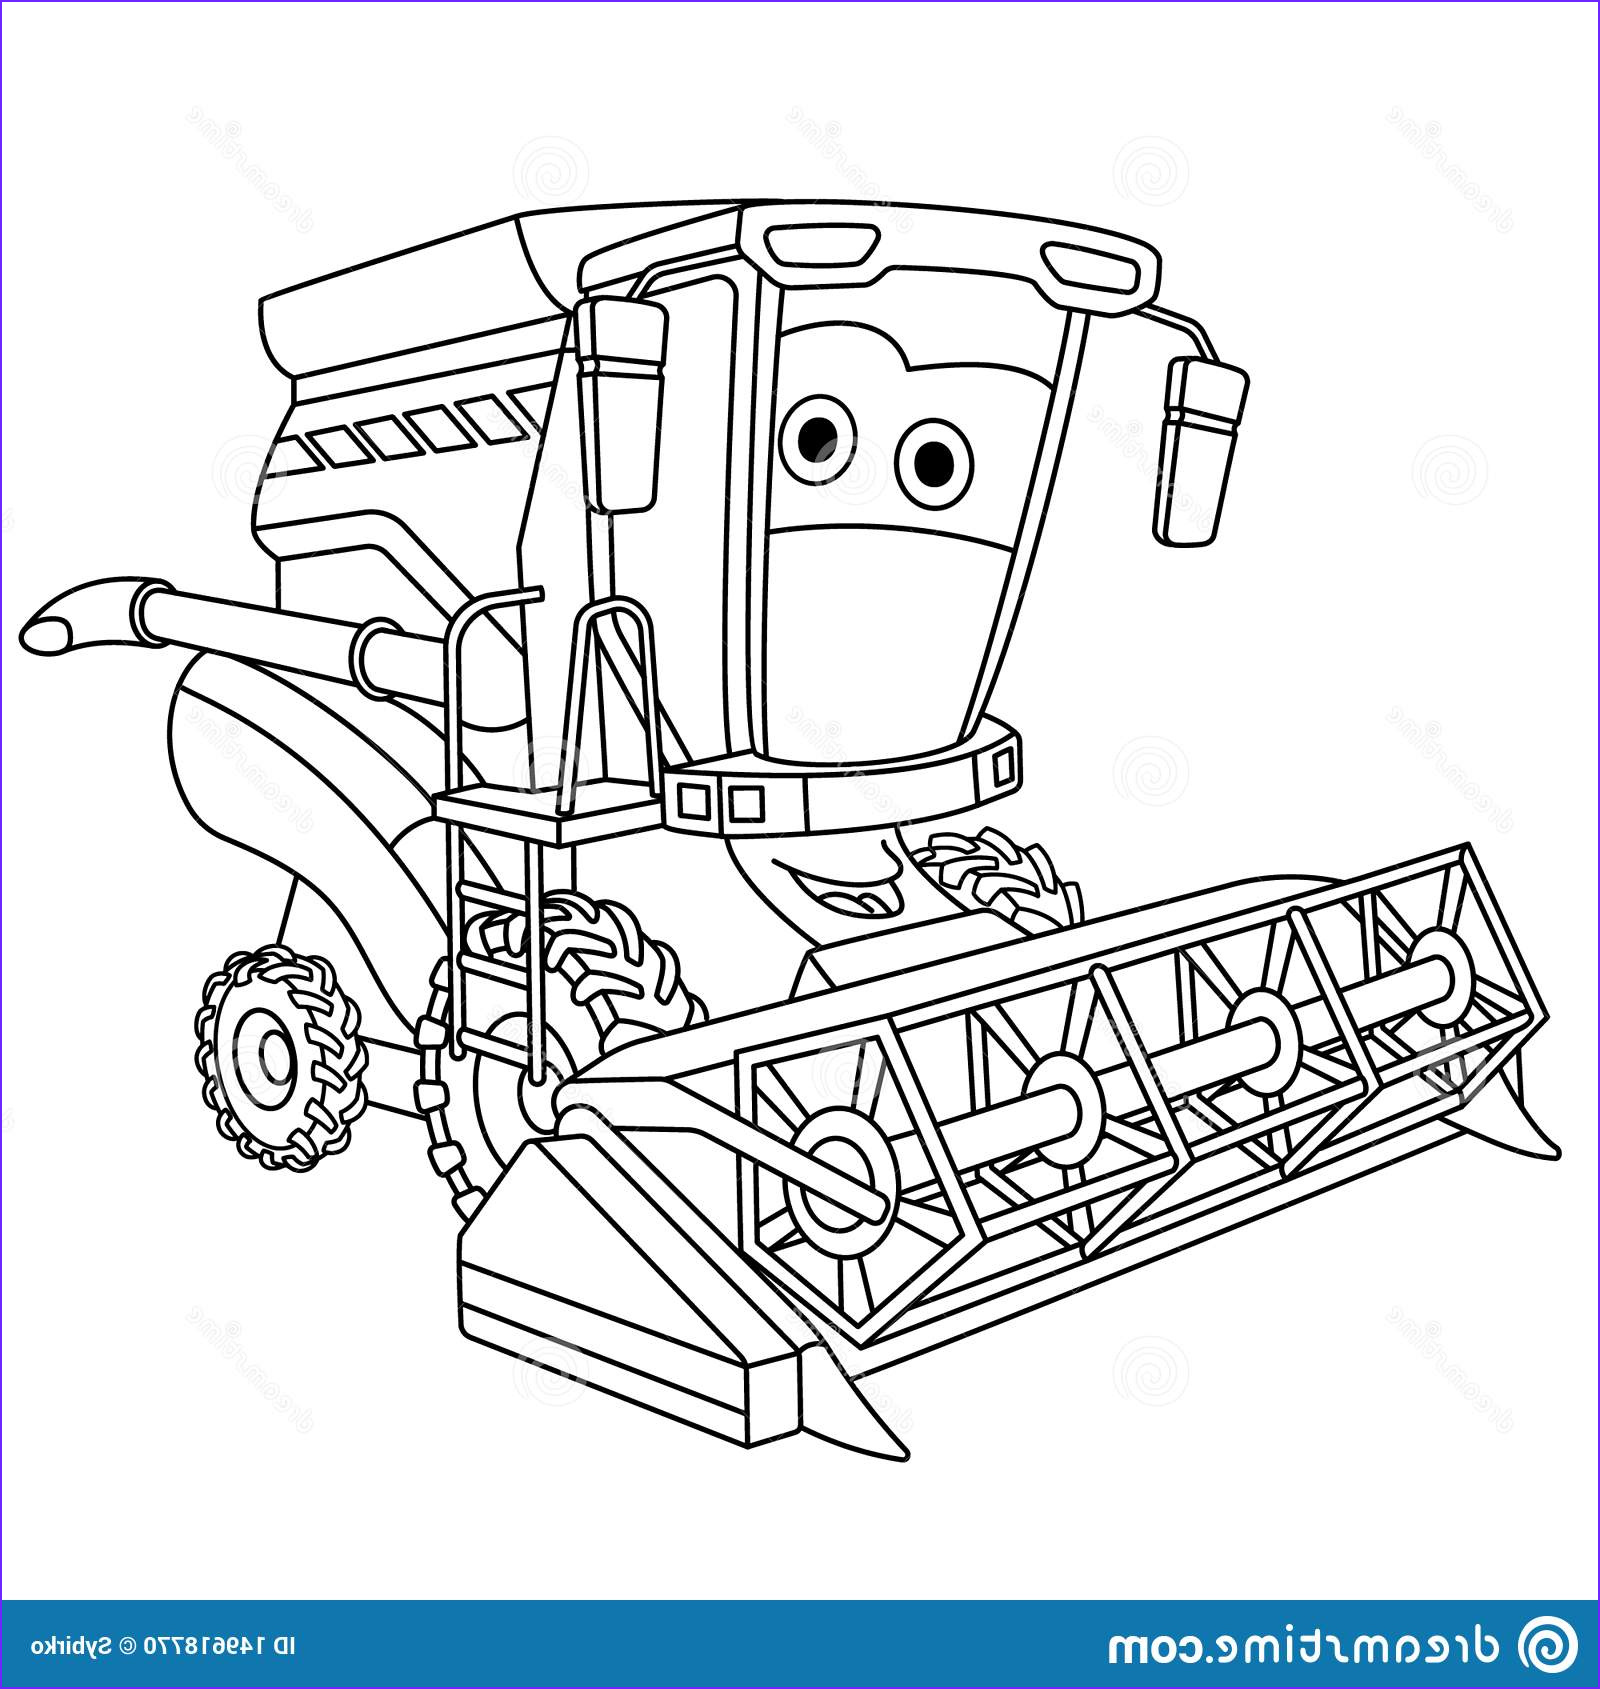 Combine Coloring Page Inspirational Image Coloring Page with Harvester Bine Stock Vector